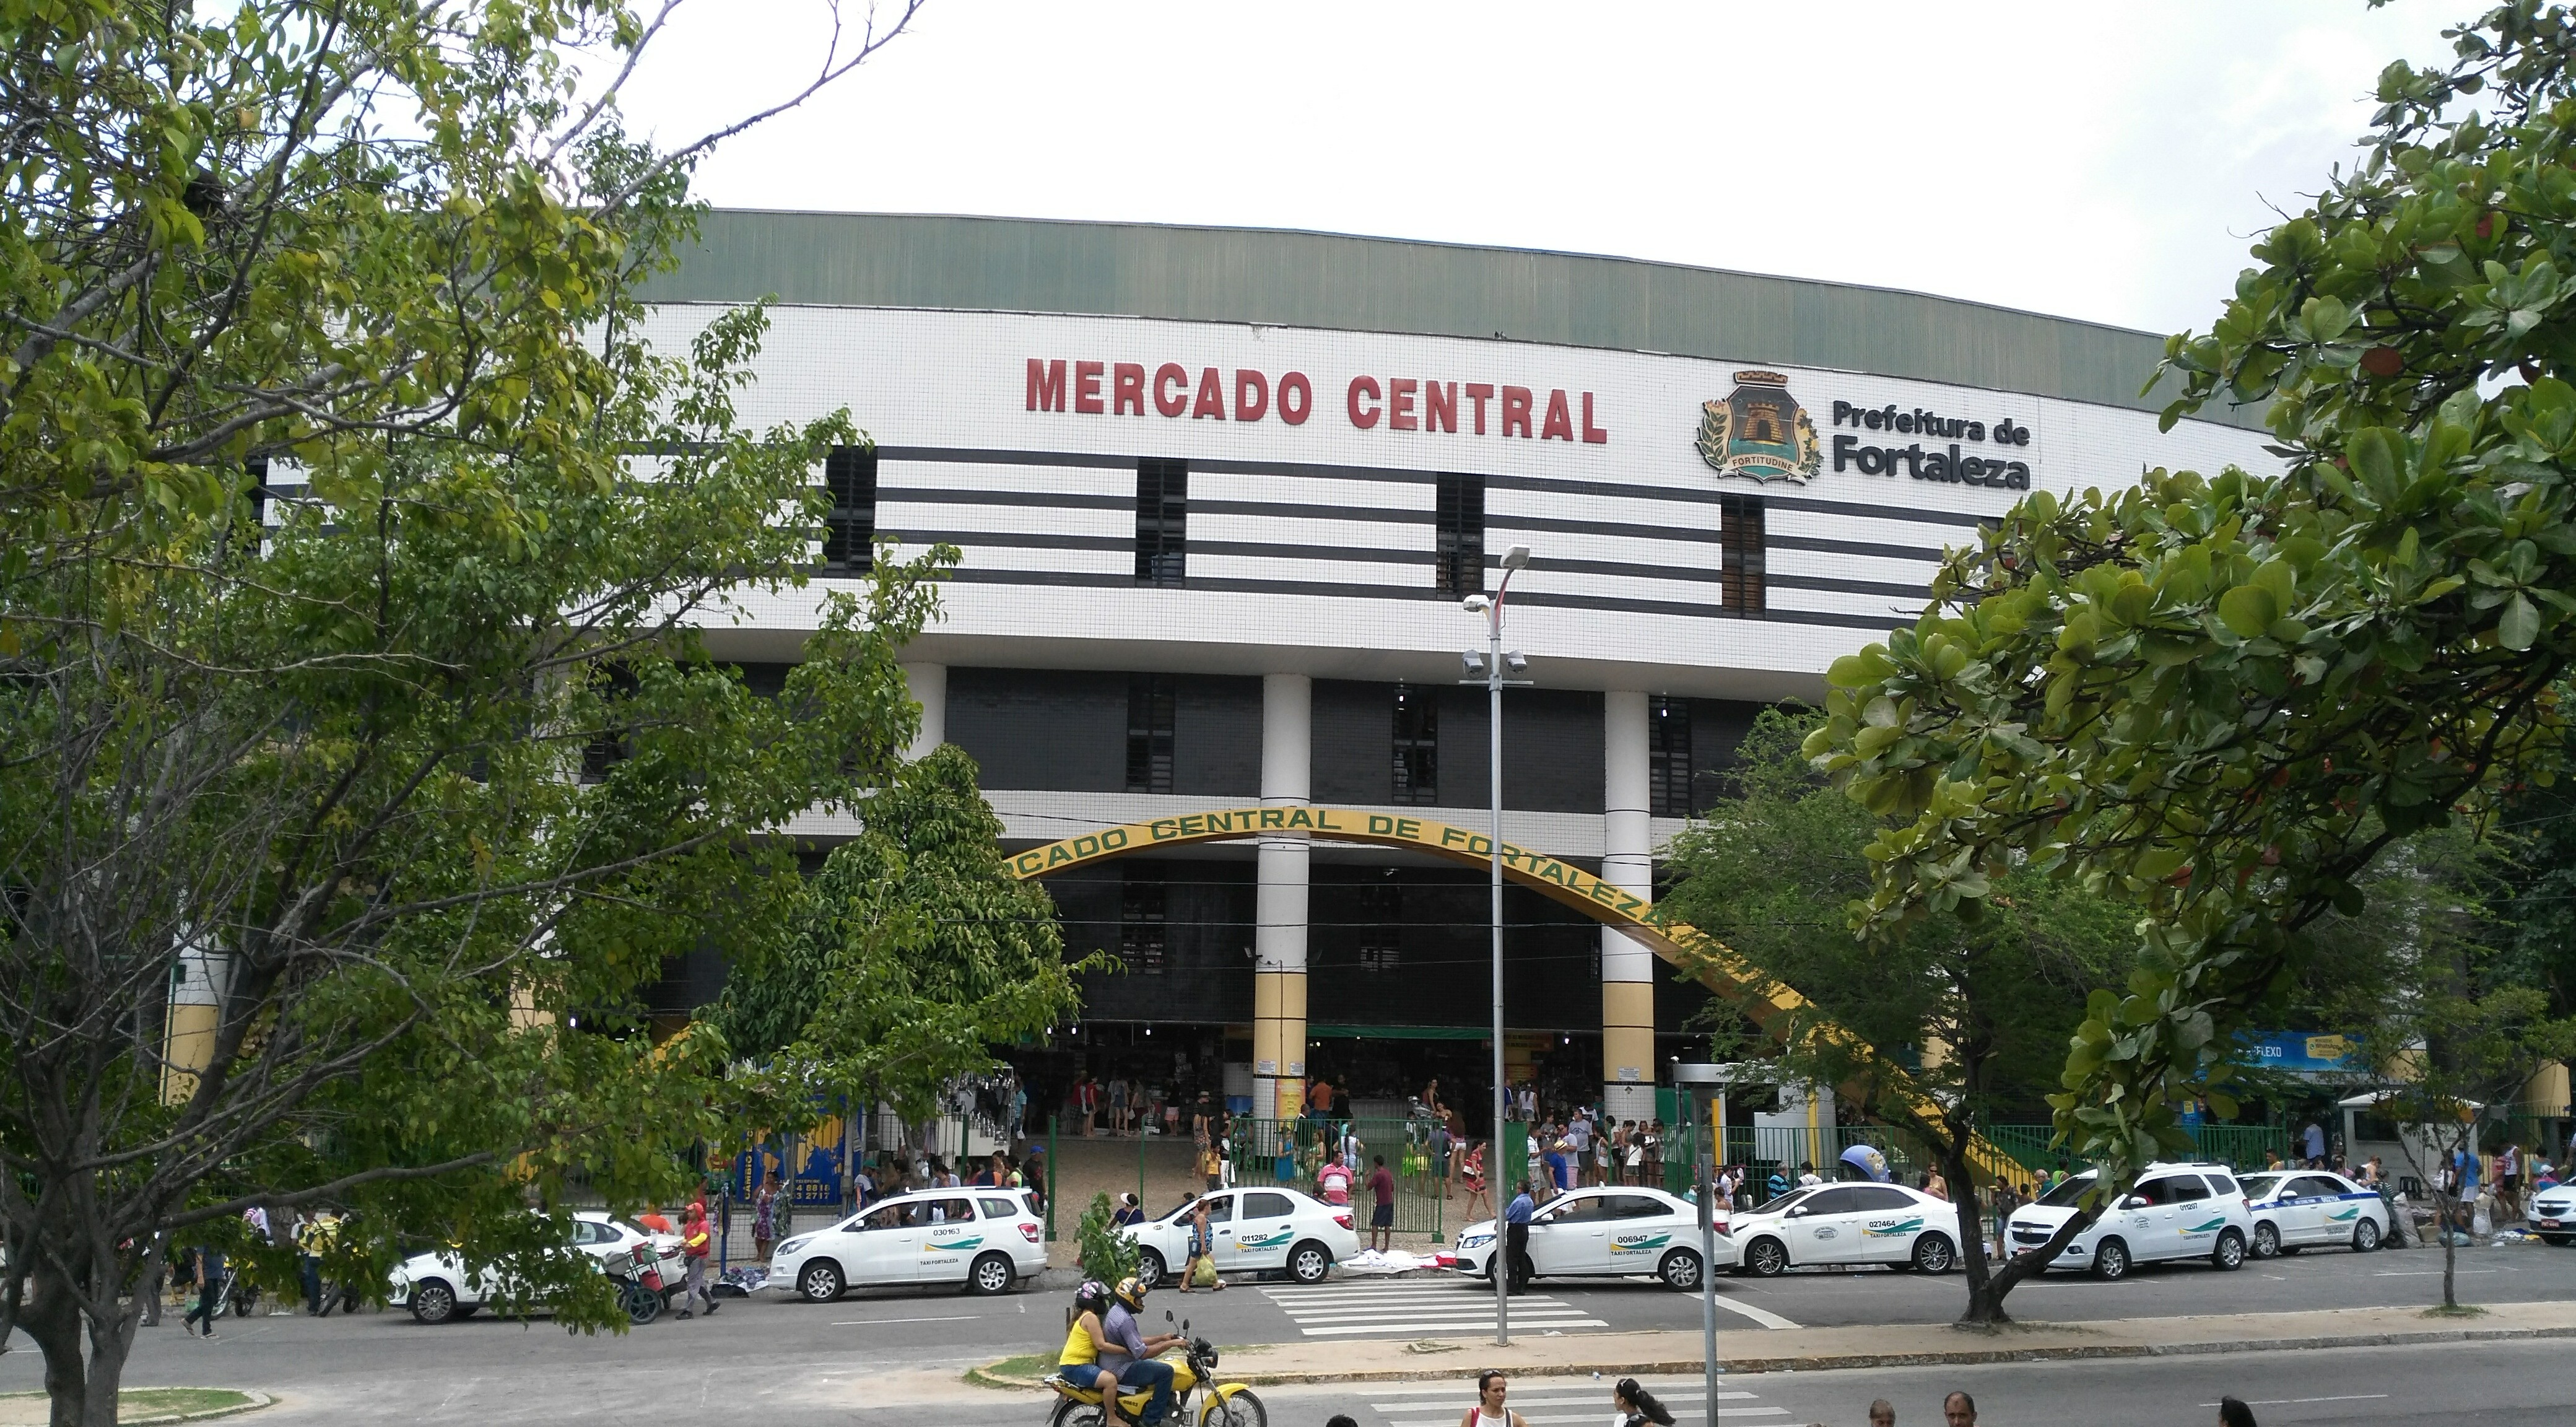 Mercado central Fortaleza